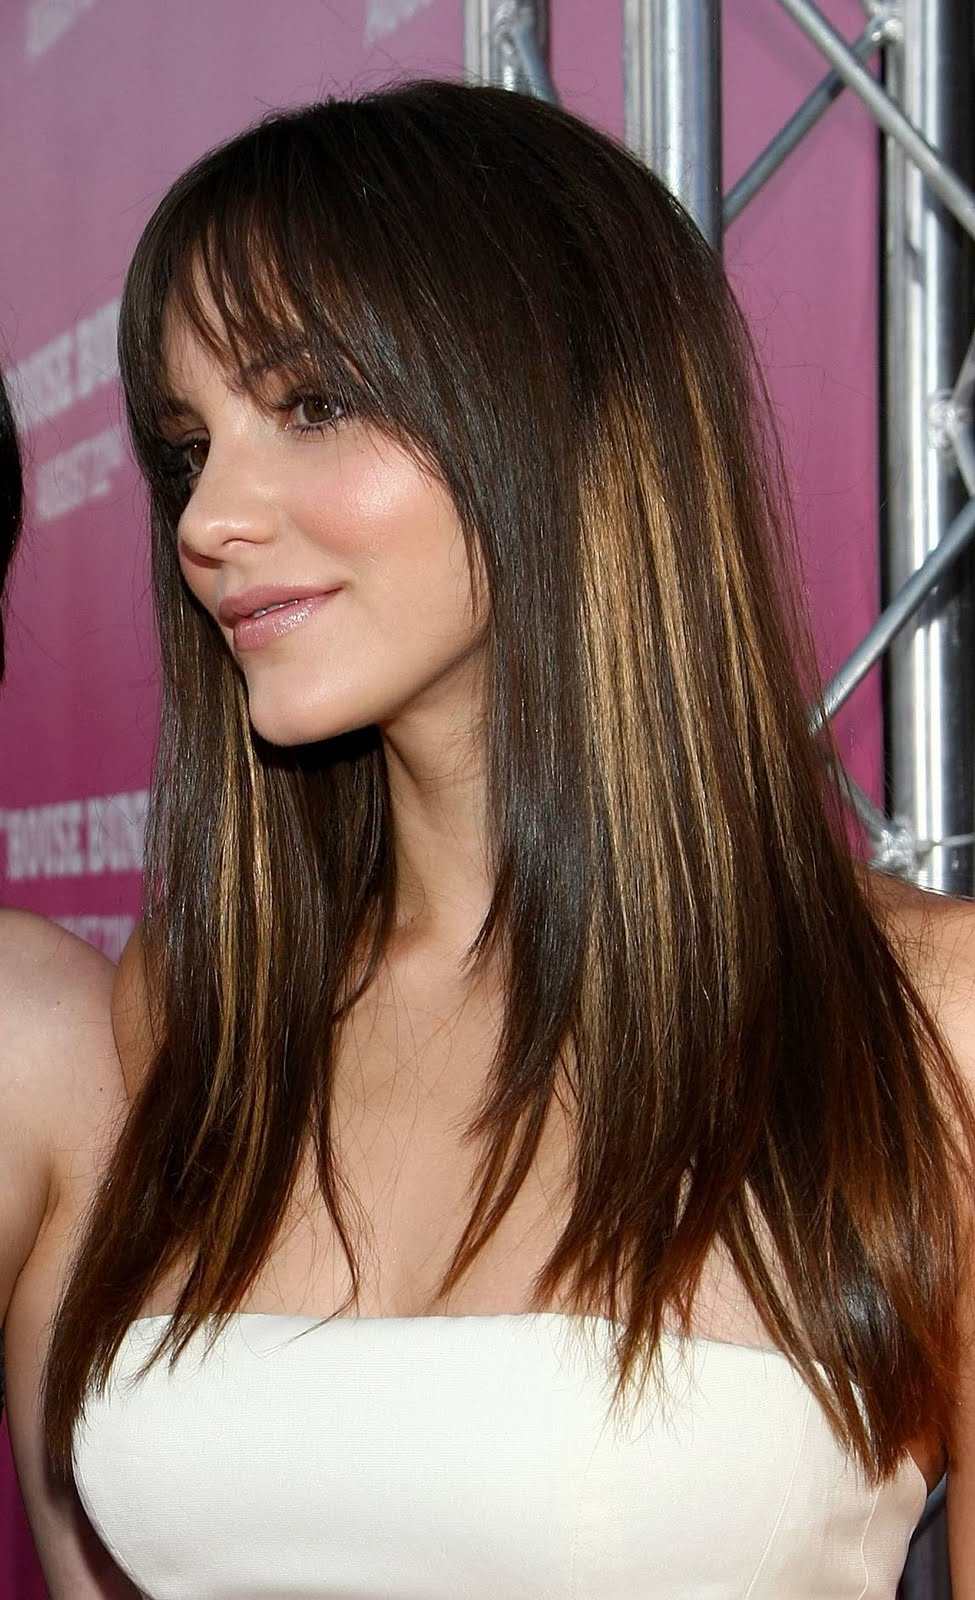 Bangs Hairstyles 2011, Long Hairstyle 2011, Hairstyle 2011, New Long Hairstyle 2011, Celebrity Long Hairstyles 2075